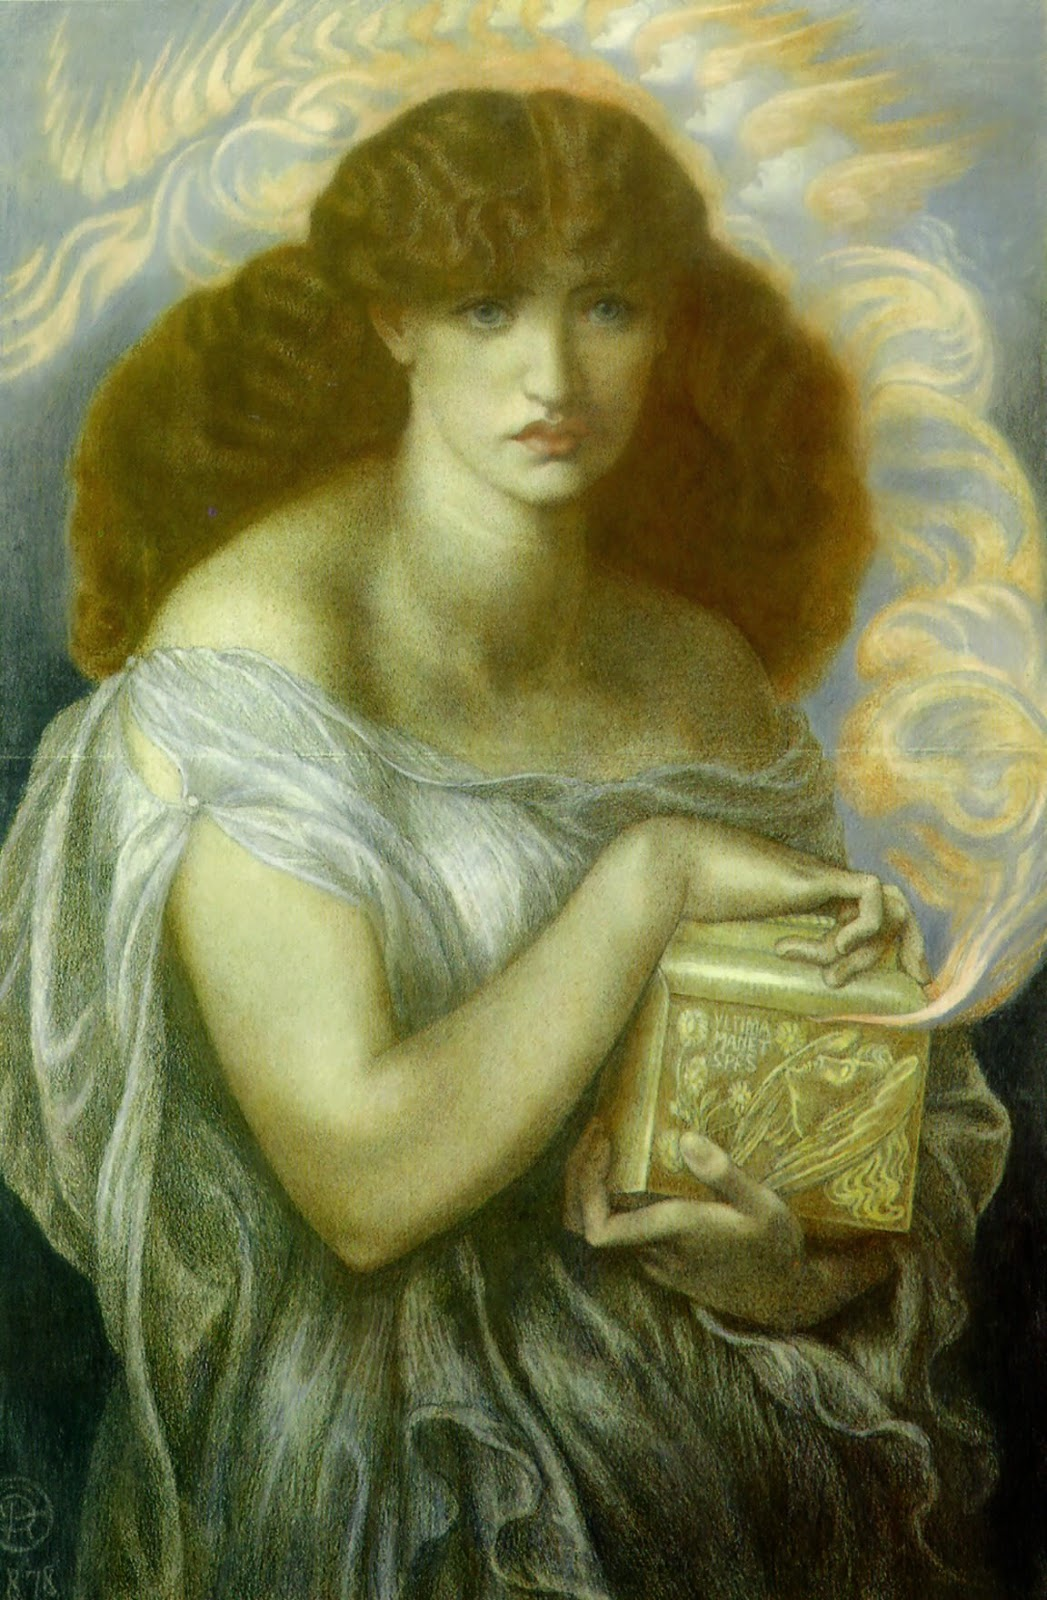 v omalous identified box like objects part 1 one of dante gabriel rossetti s famous pandora paintings 1879